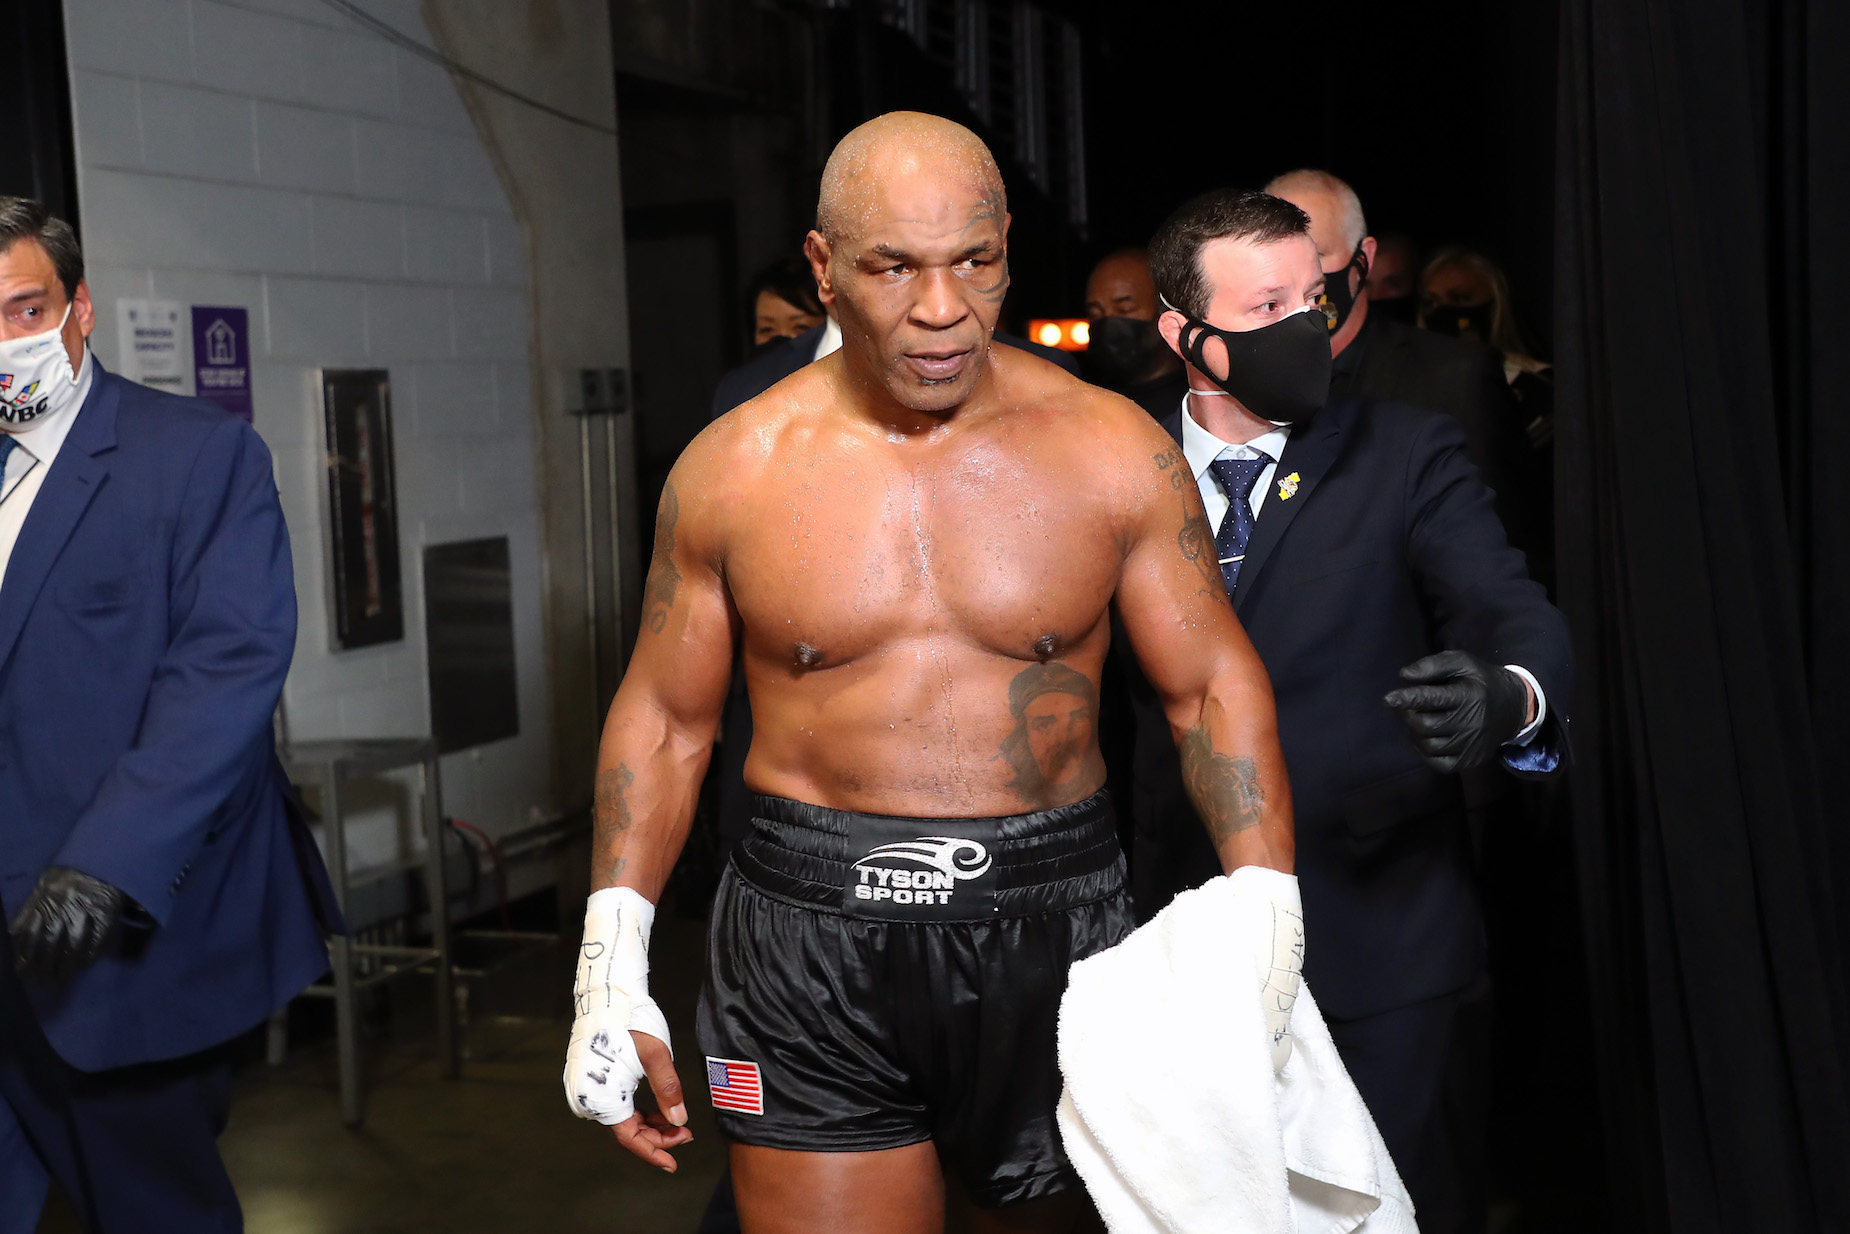 Mike Tyson once admitted that he thought about killing people before he found boxing.